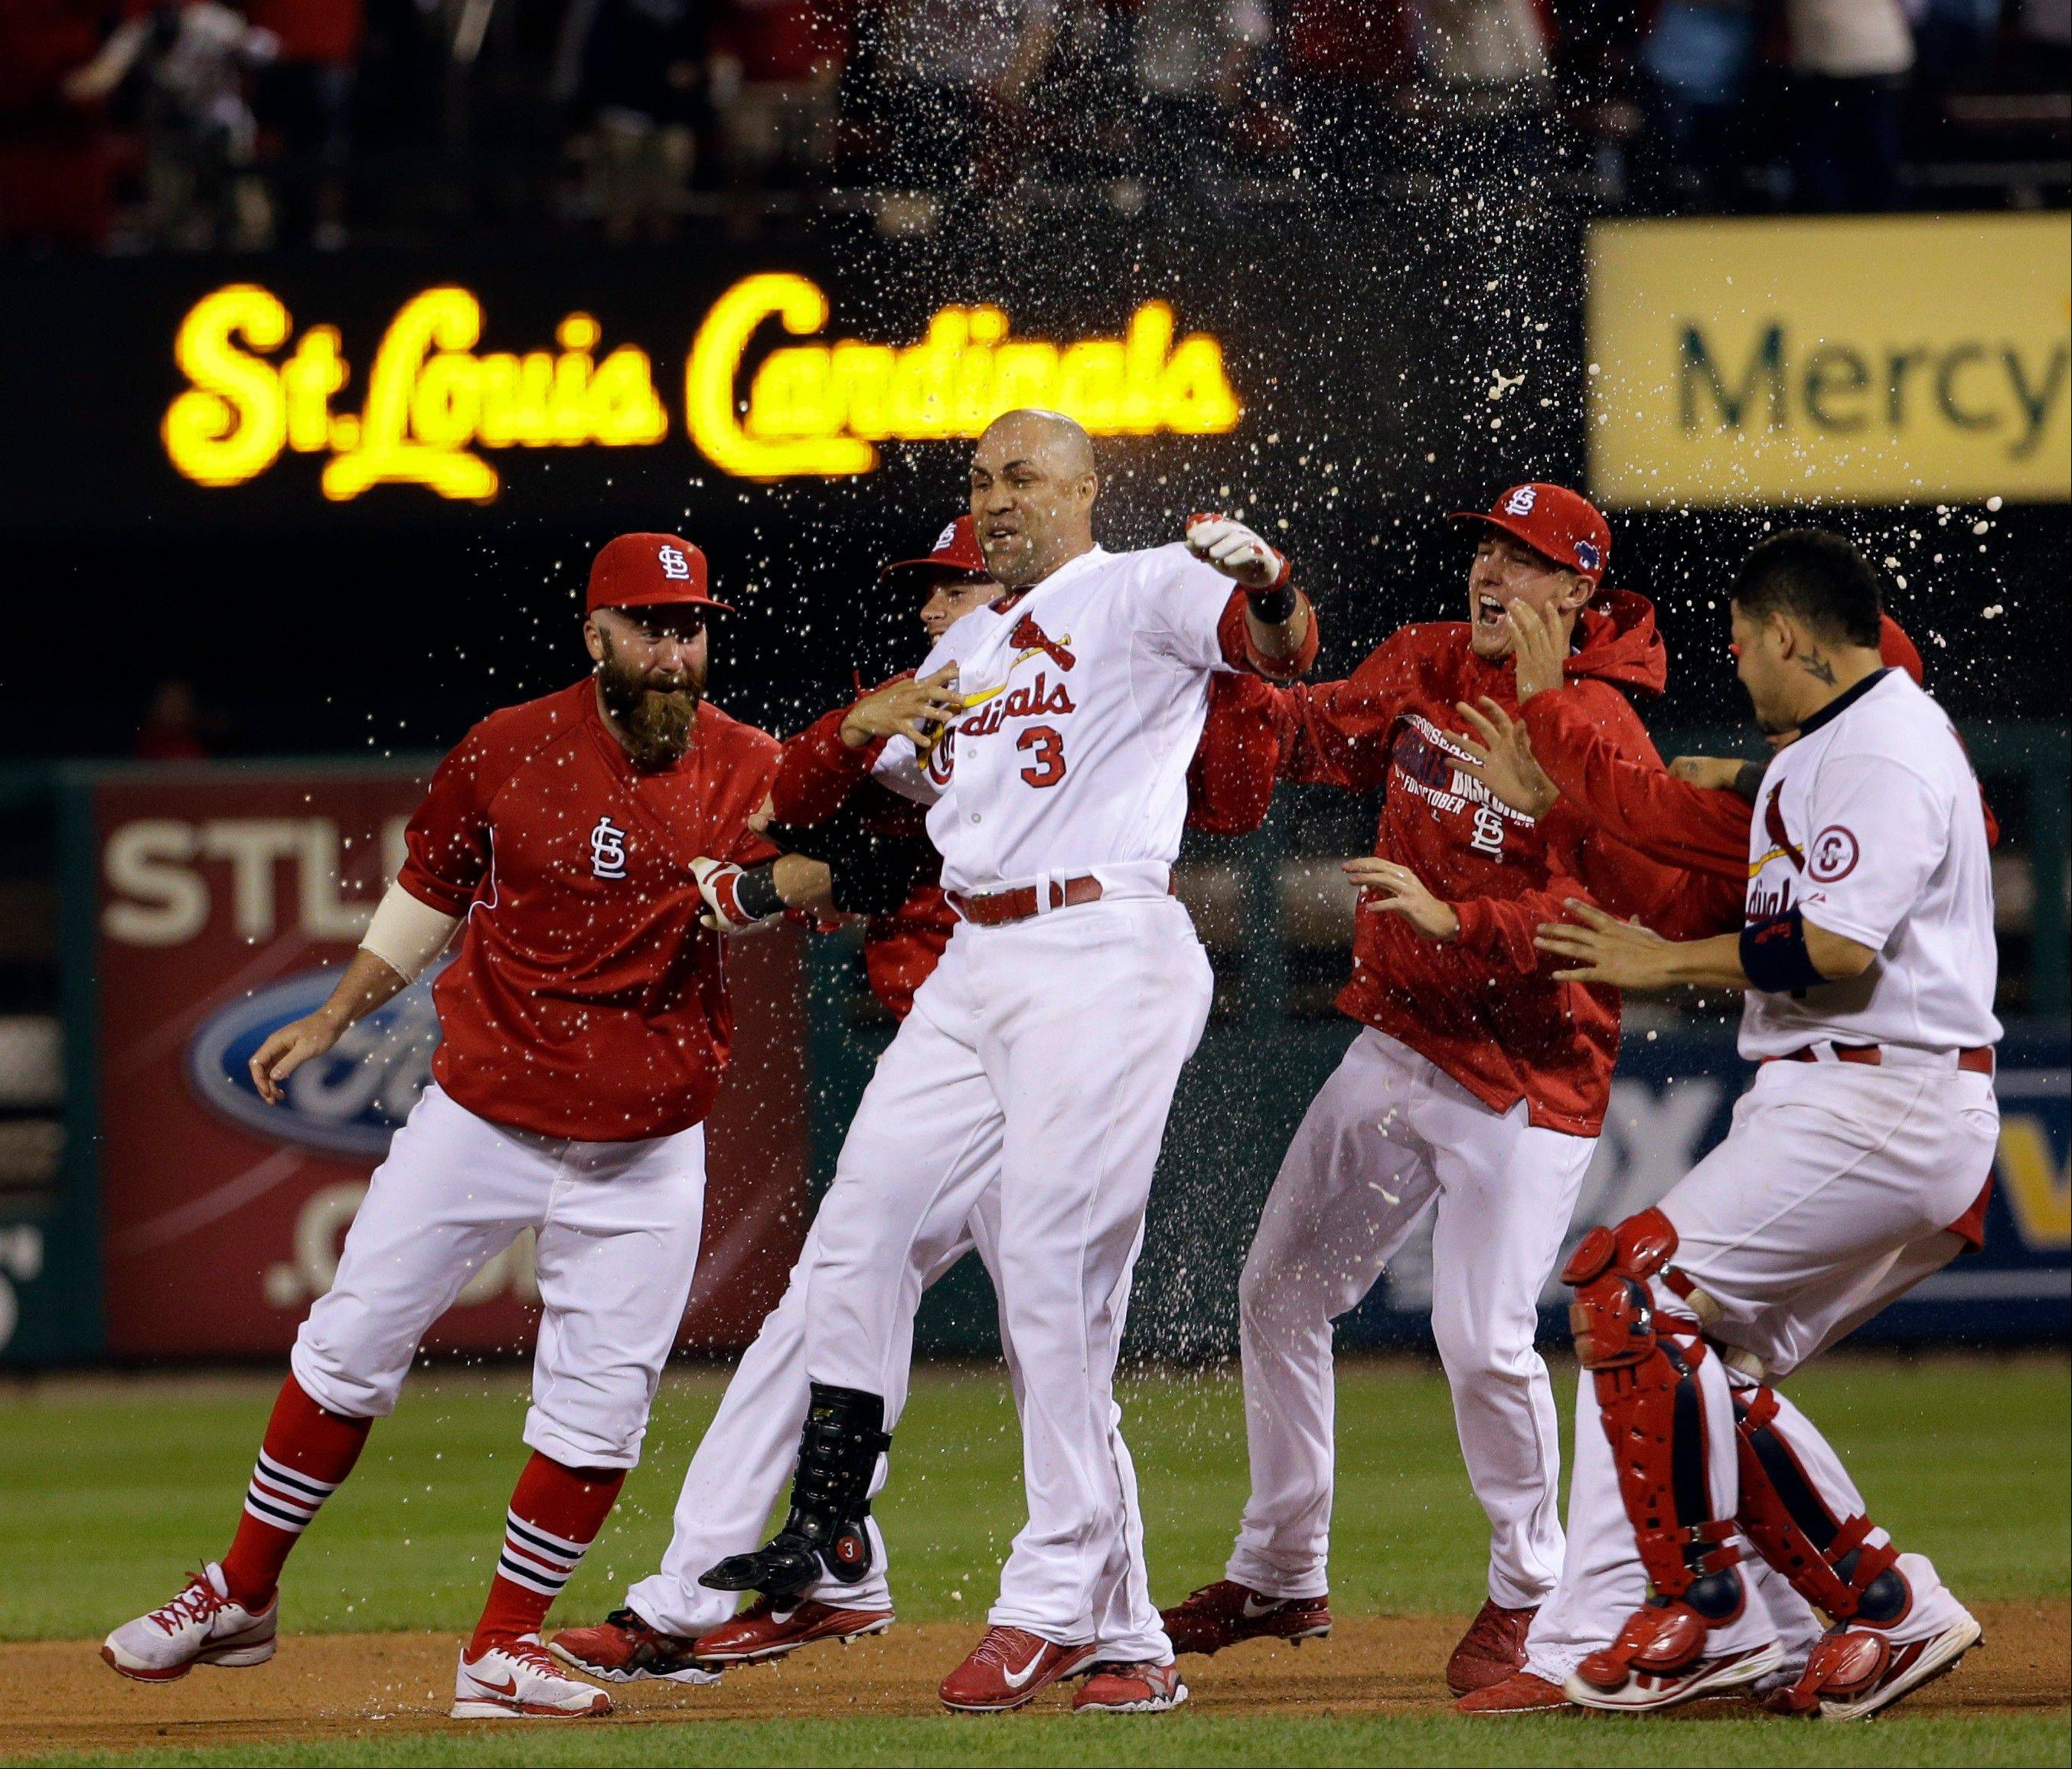 The Cardinals swarm Carlos Beltran after his game-winning hit during the 13th inning of Game 1 of the National League Championship Series against the Los Angeles Dodgers in St. Louis.